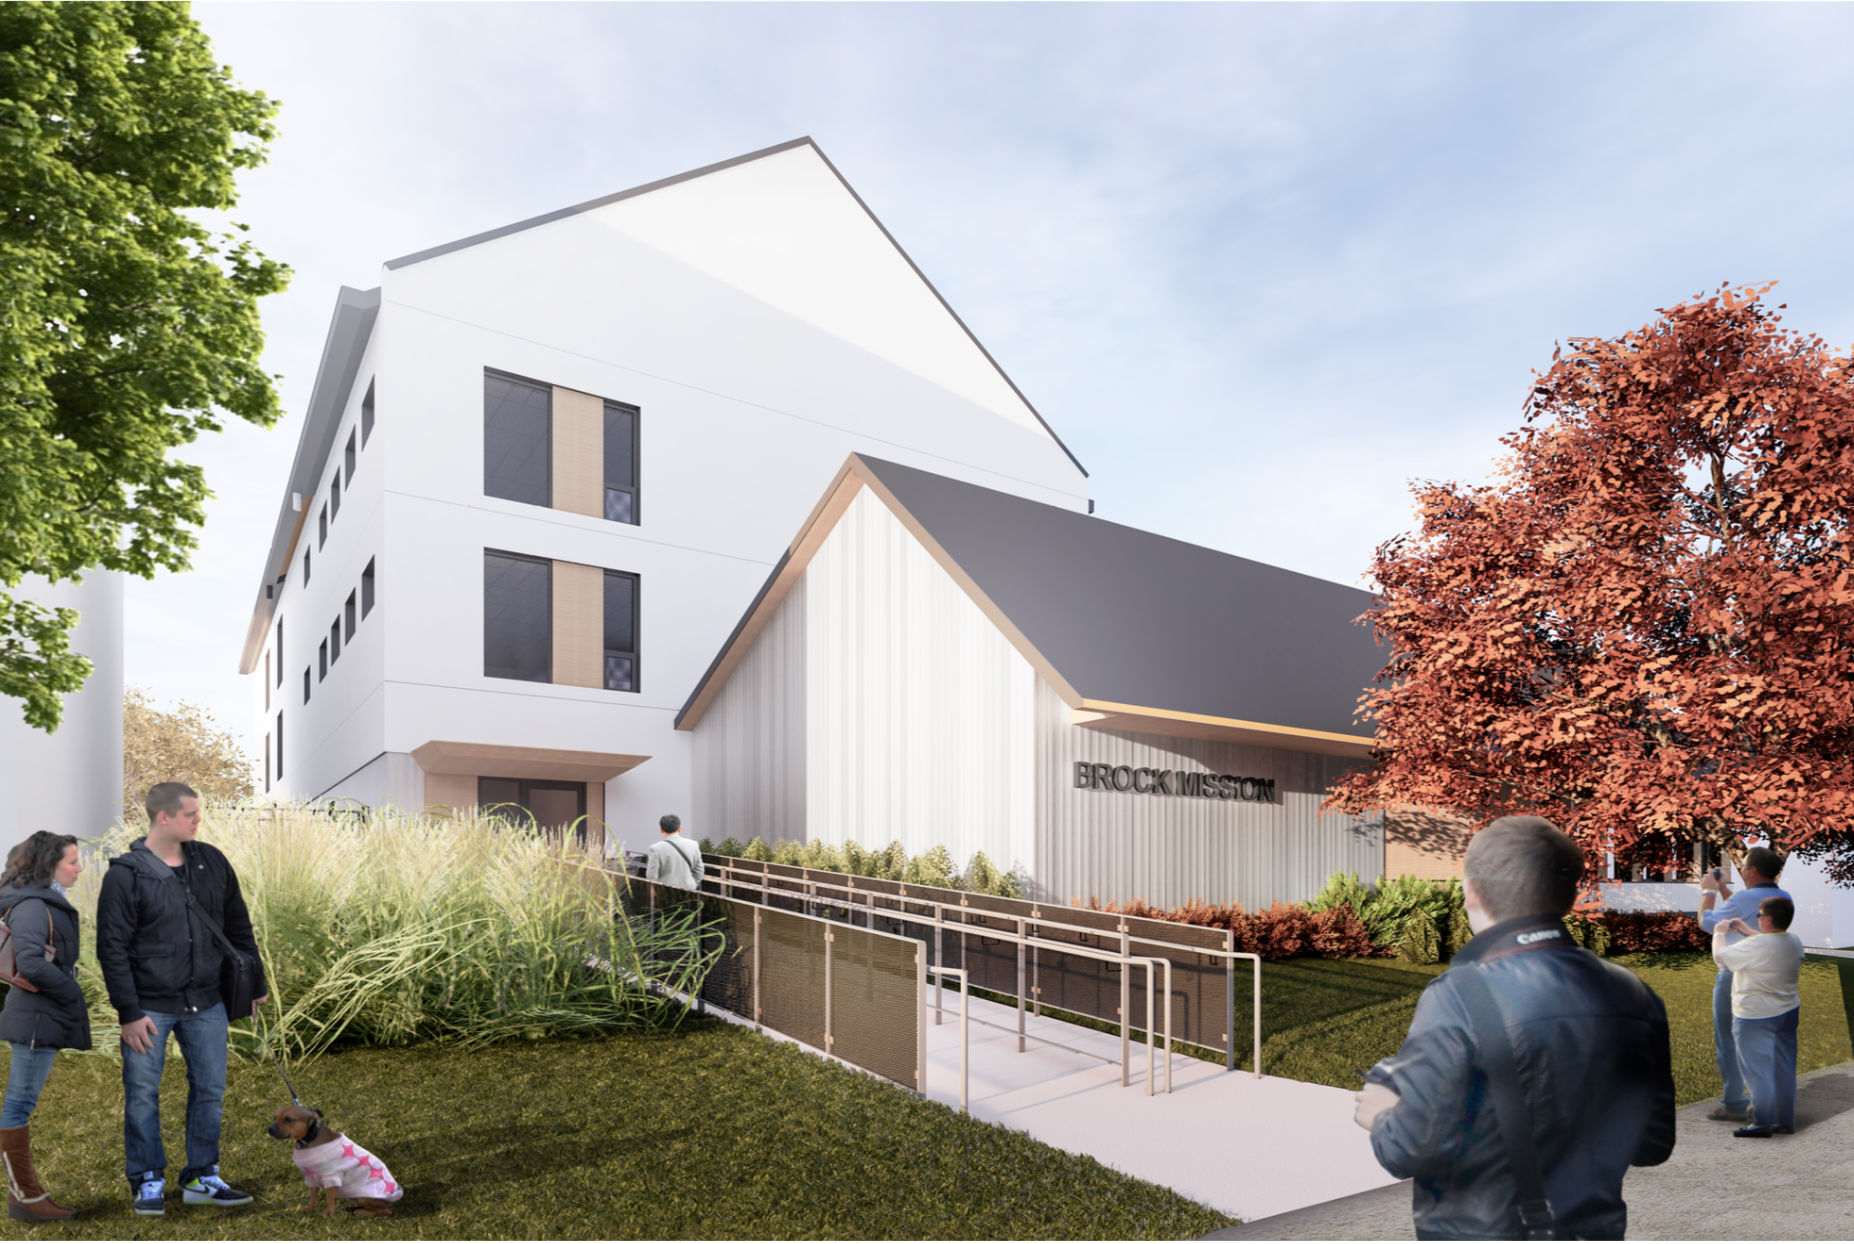 Main entrance of Brock Misson, rendering courtesy Lett Architects